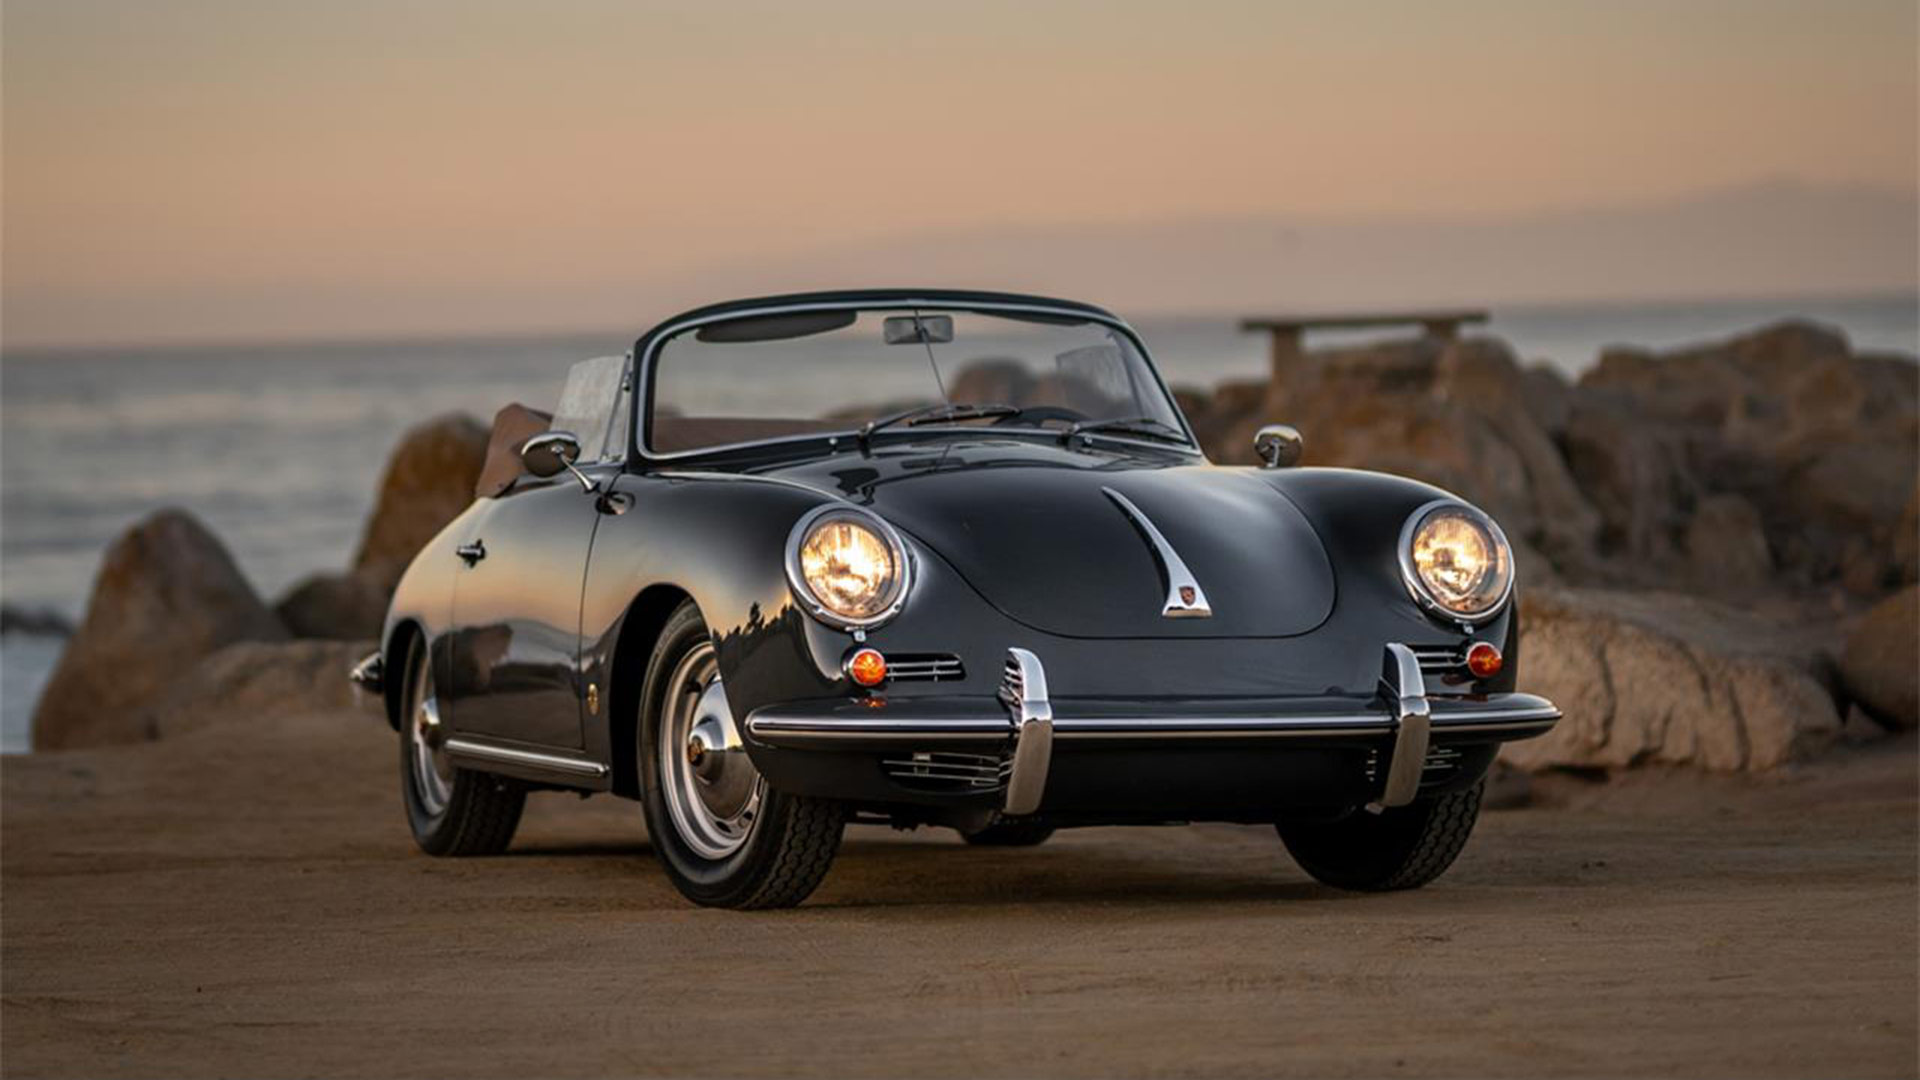 Get Beach Ready With This 1963 Porsche 356 B Cabriolet Up For Sale Motoring Research